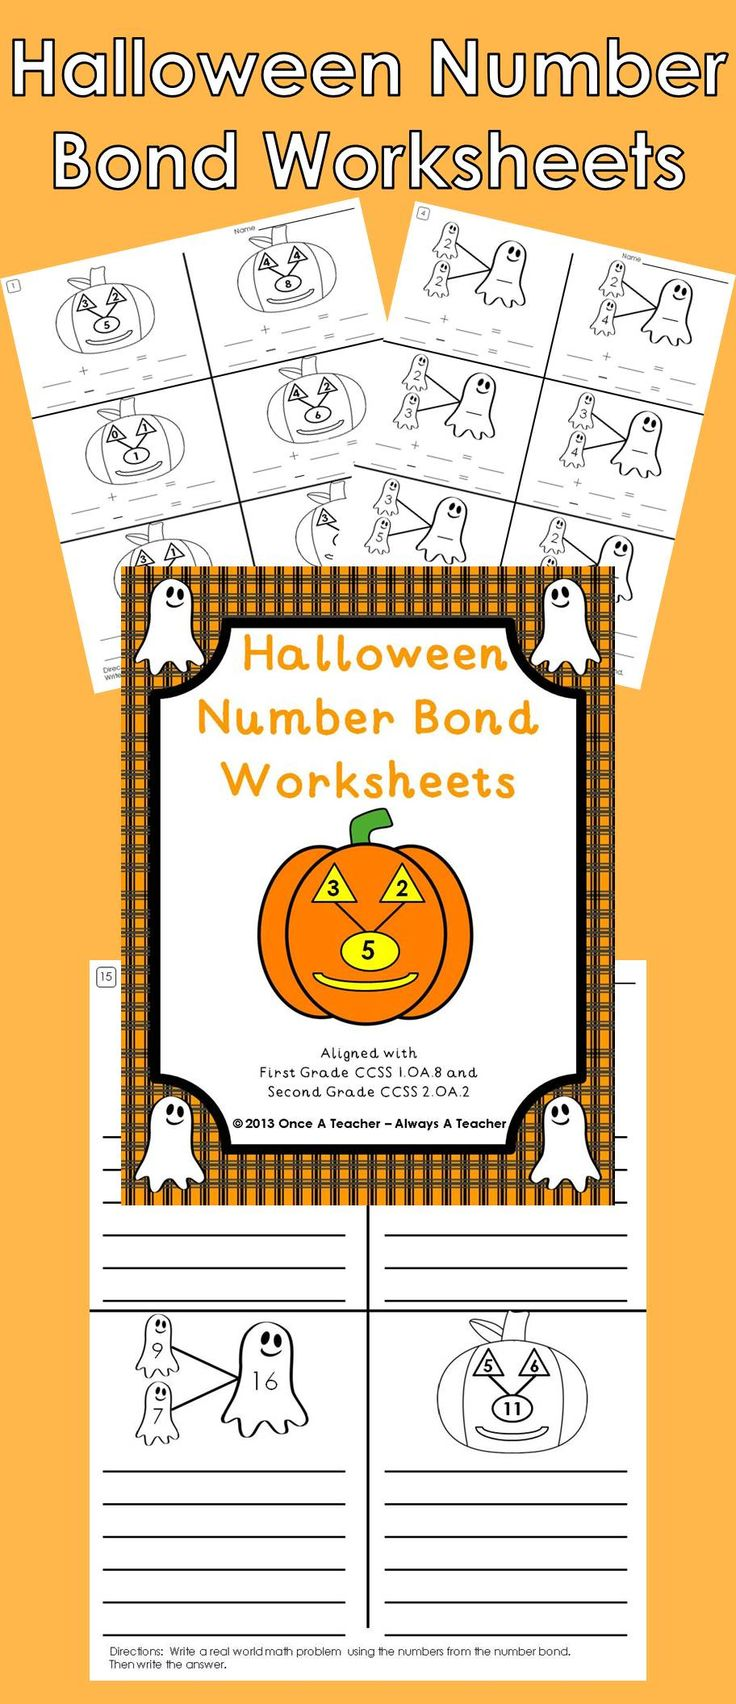 worksheet Number Bond Worksheets 17 best ideas about number bonds worksheets on pinterest add some halloween fun to your students math class with this collection of bond